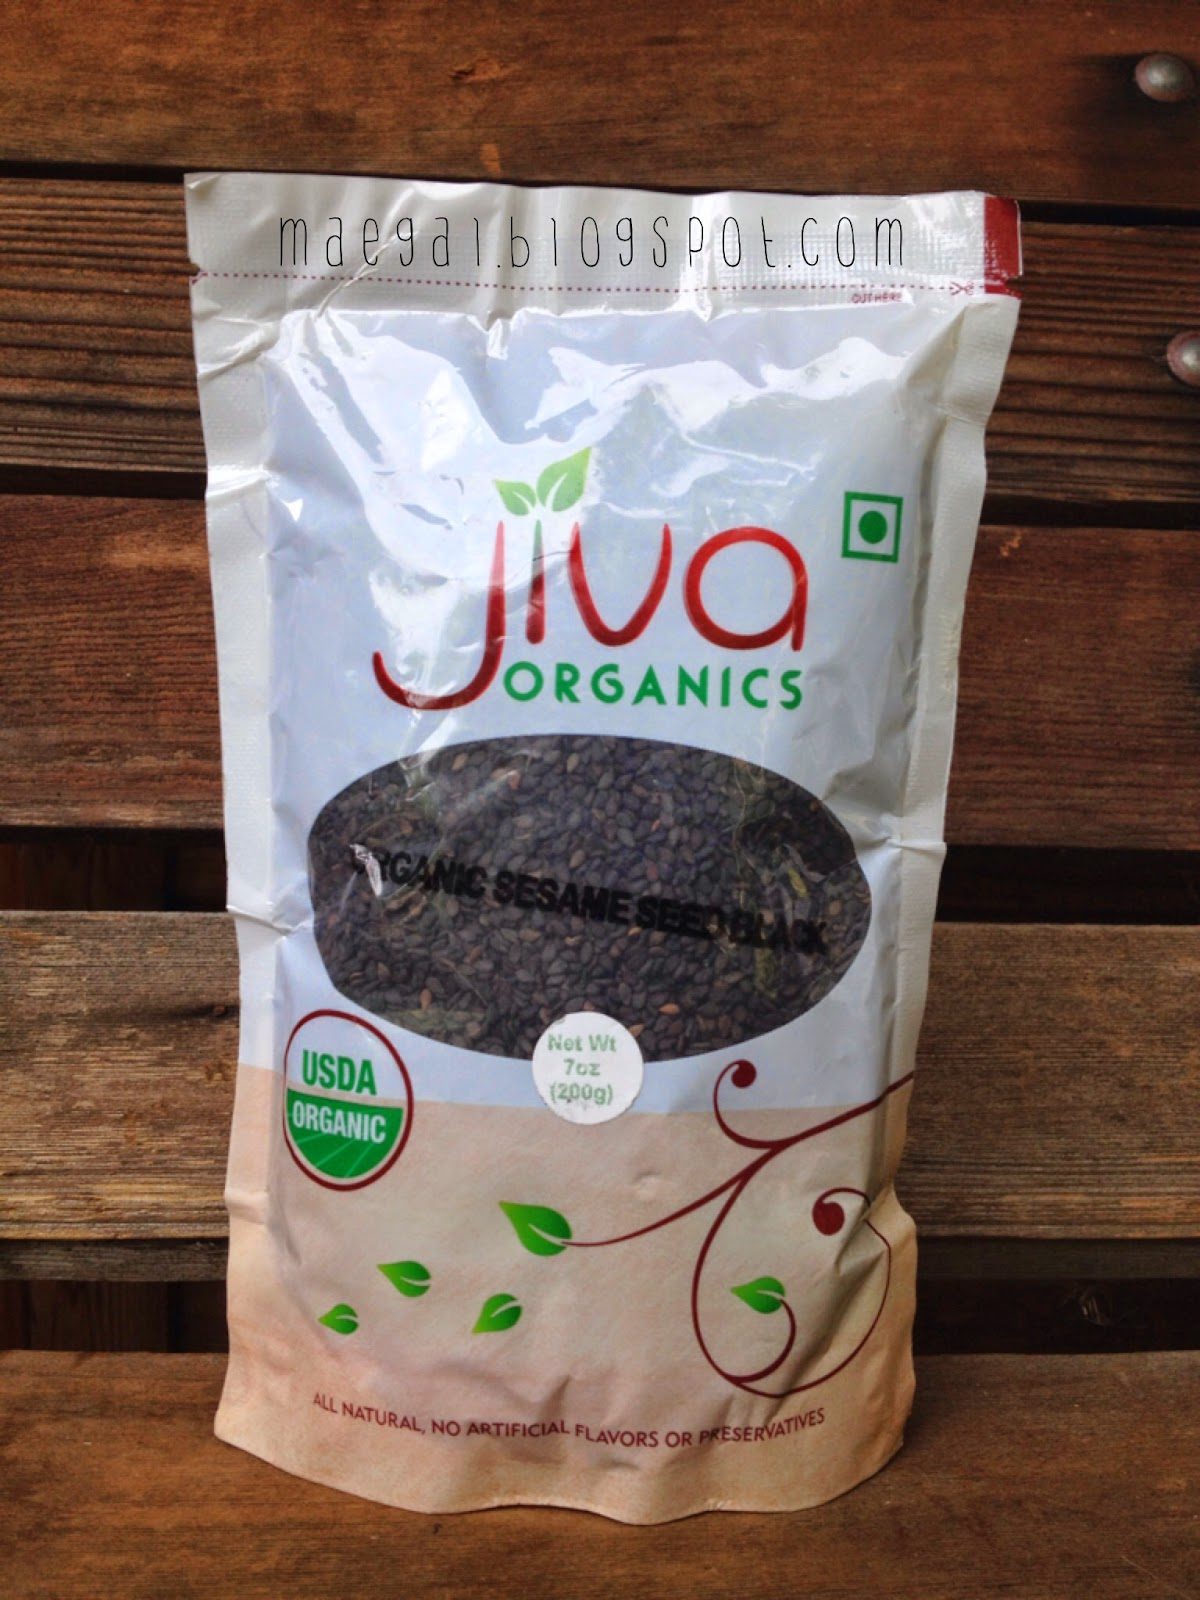 jiva organic black sesame seeds | maegal.blogspot.com